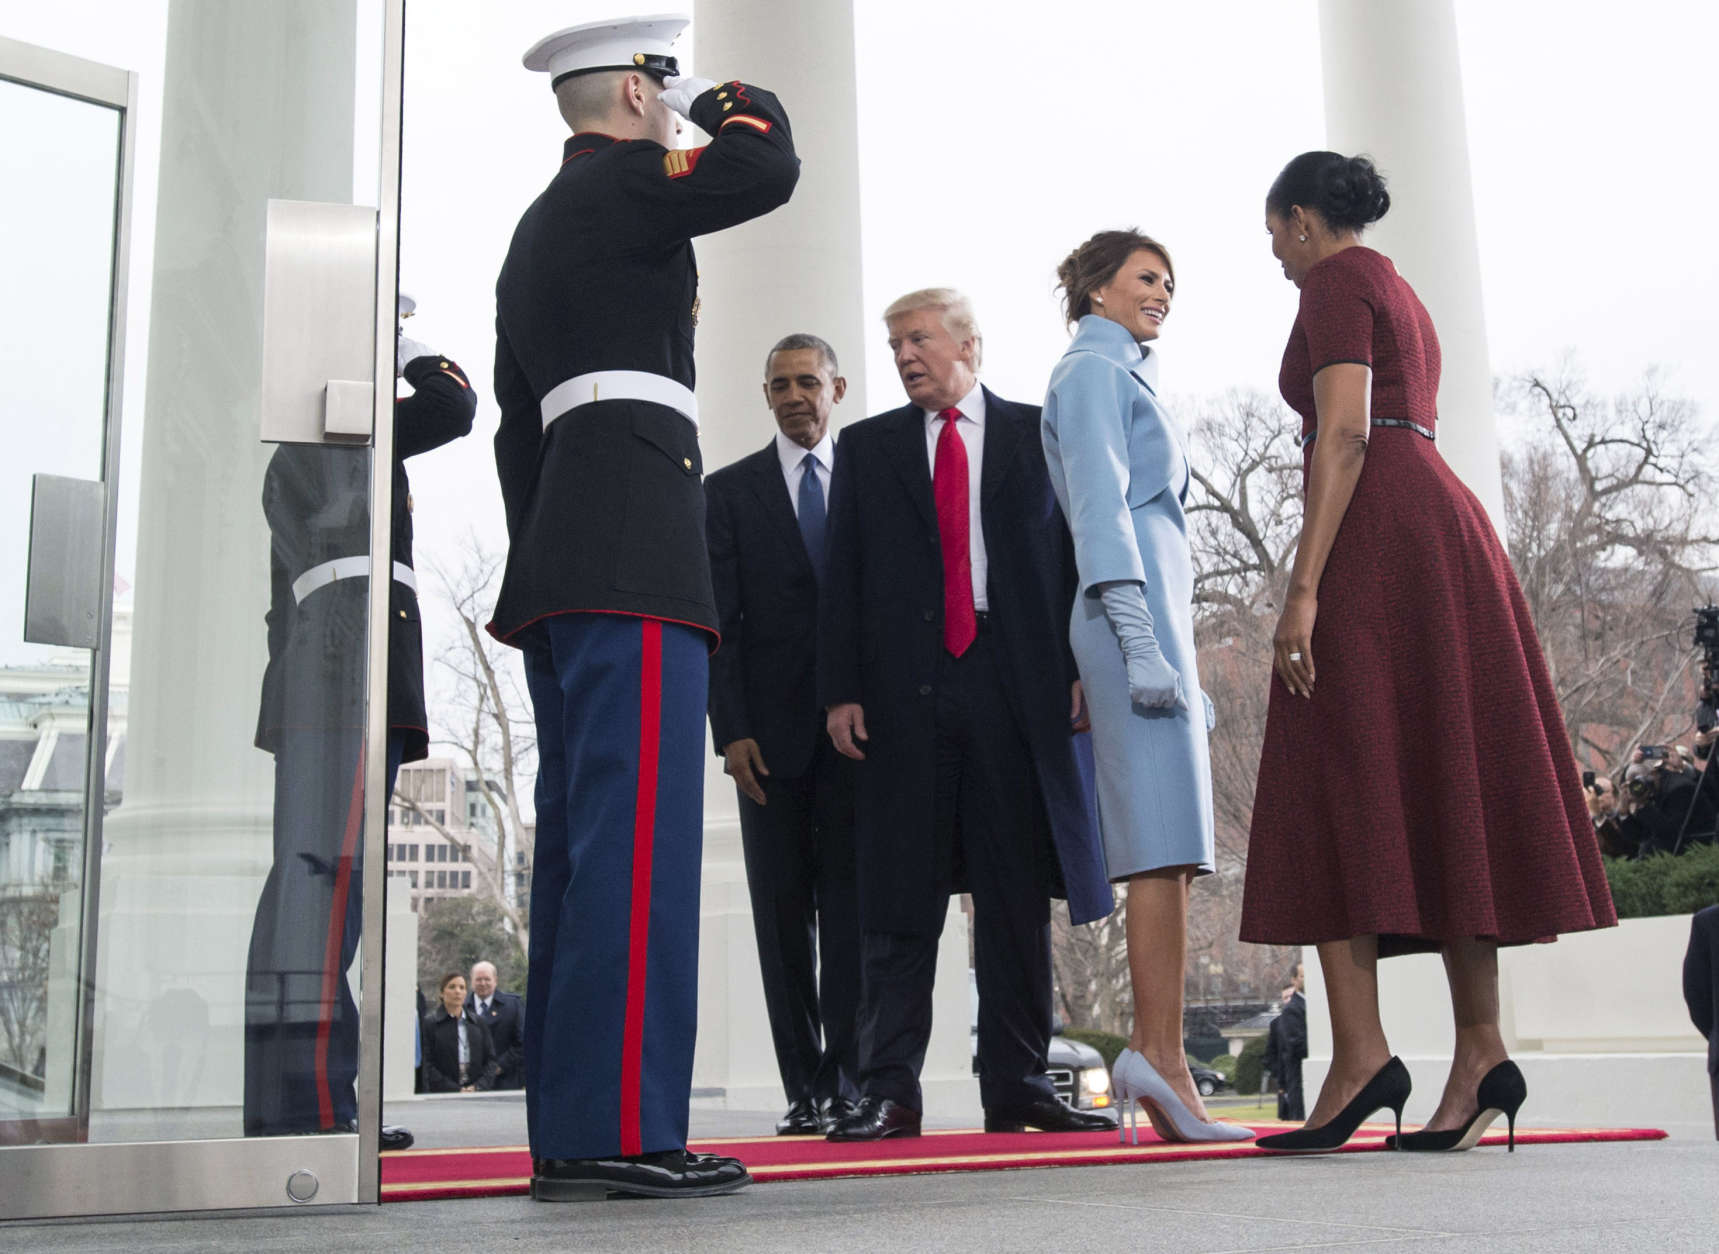 WASHINGTON, DC - JANUARY 20:  President Barack Obama and First Lady Michelle Obama welcome President-elect Donald Trump and his wife Melania Trump to the White House prior to the inauguration in Washington, D.C. on January 20, 2017. Later today Donald Trump will be sworn-in as the 45th President.  (Photo by Kevin Dietsch-Pool/Getty Images)